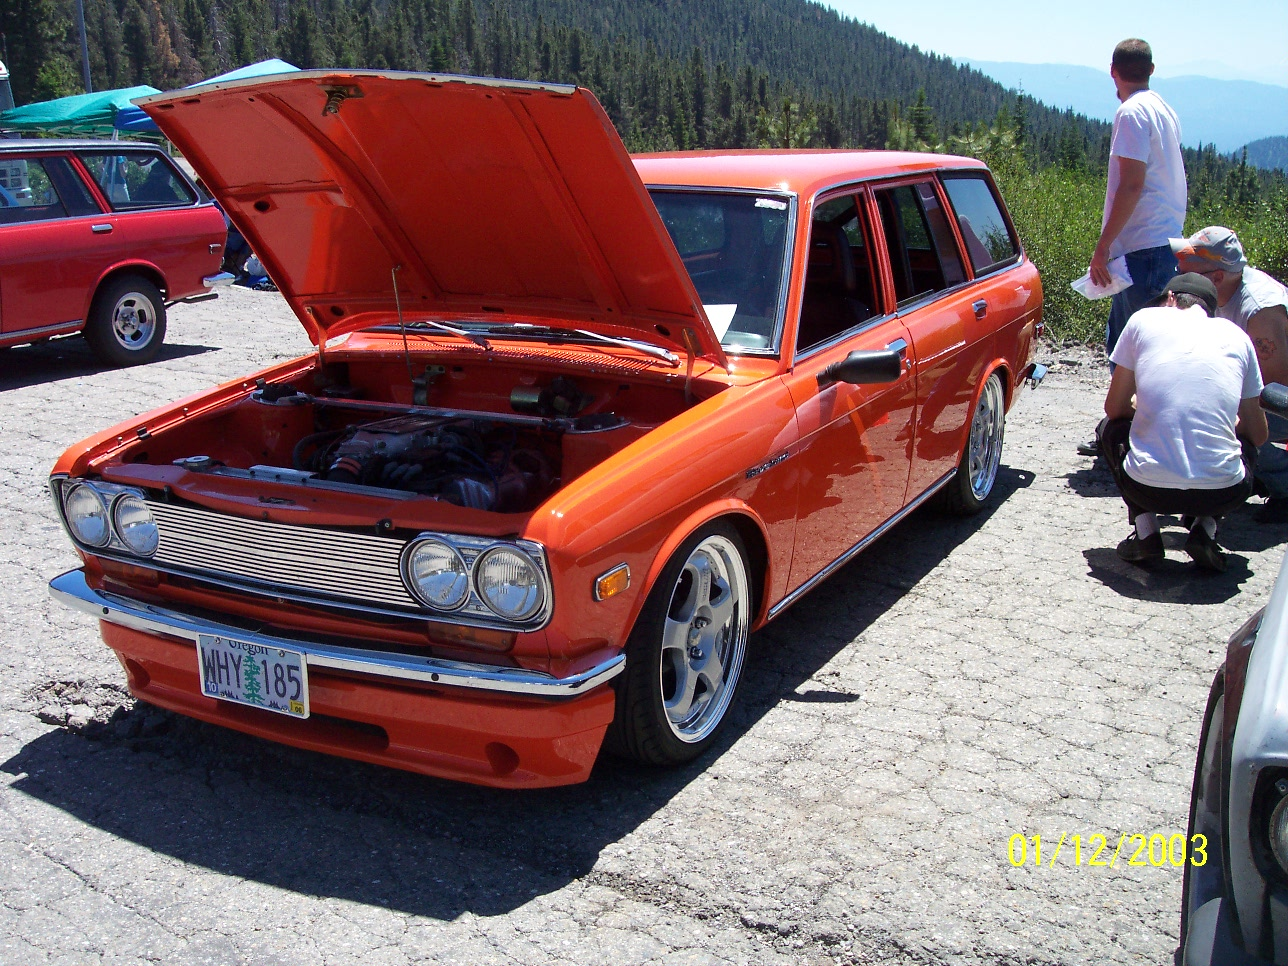 Brian Joseph's Pro Touring Tubbed VG Wagon with 4 Link